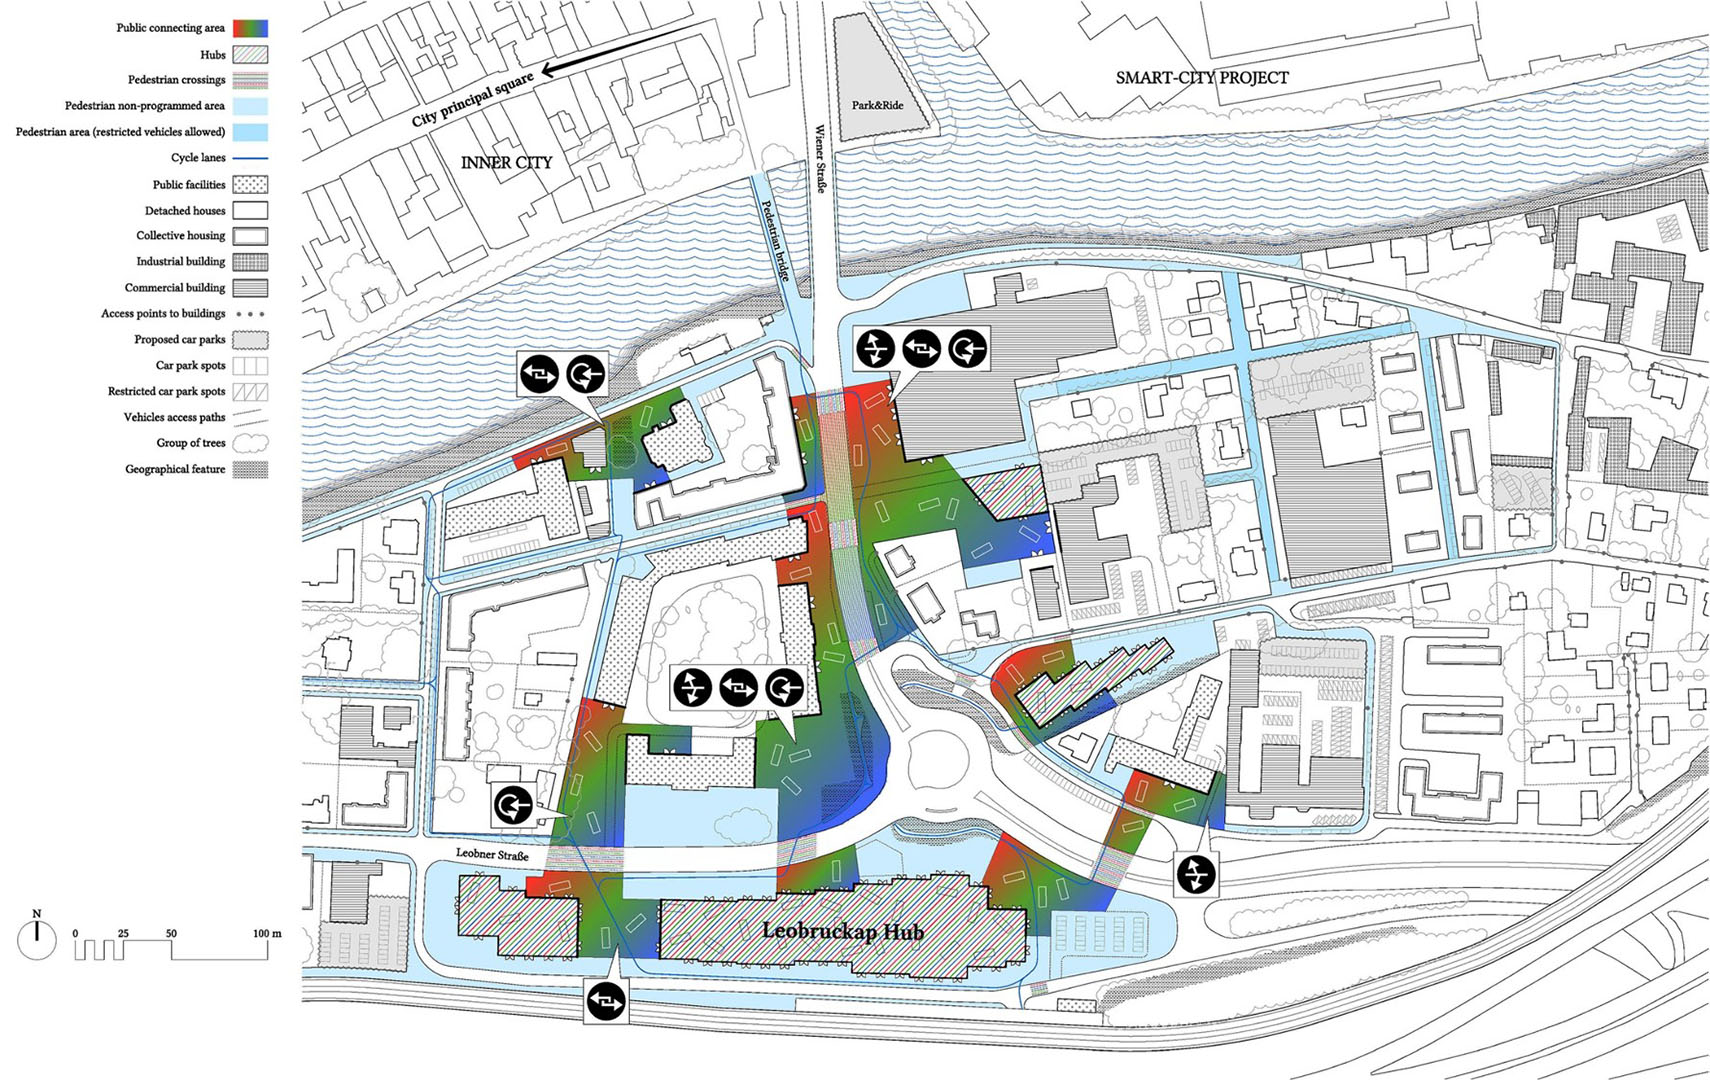 05 PLAYstudio Kune Europan 13 Bruck - Plan Public Space